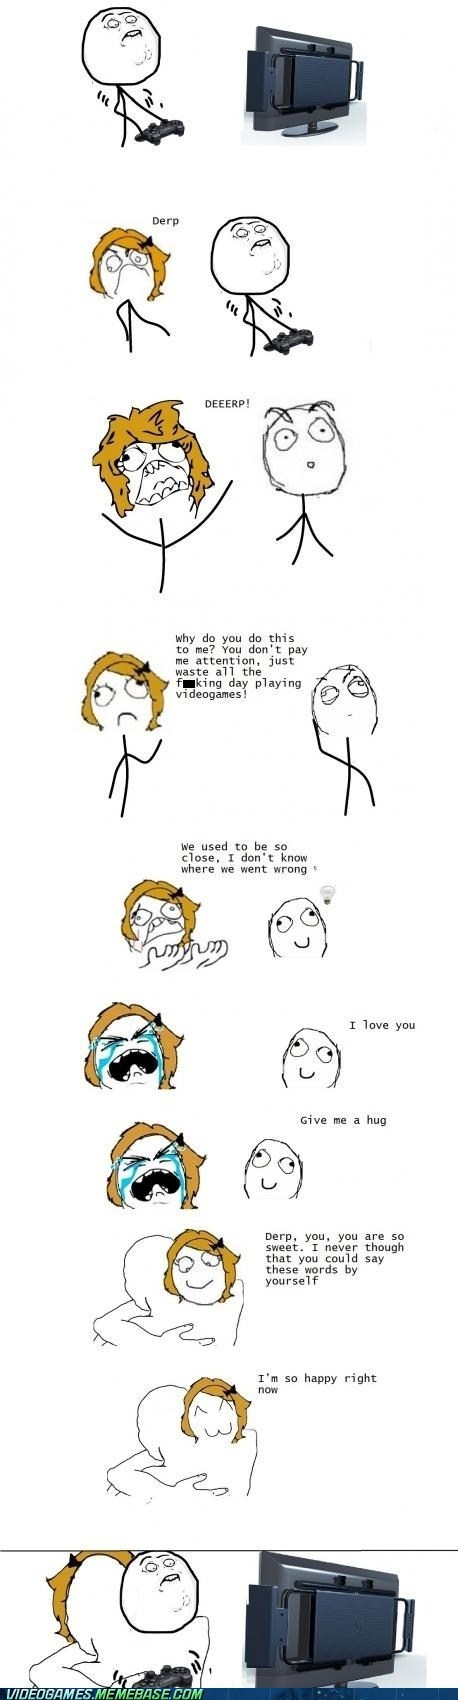 couple hug rage comic relationships - 6412836096